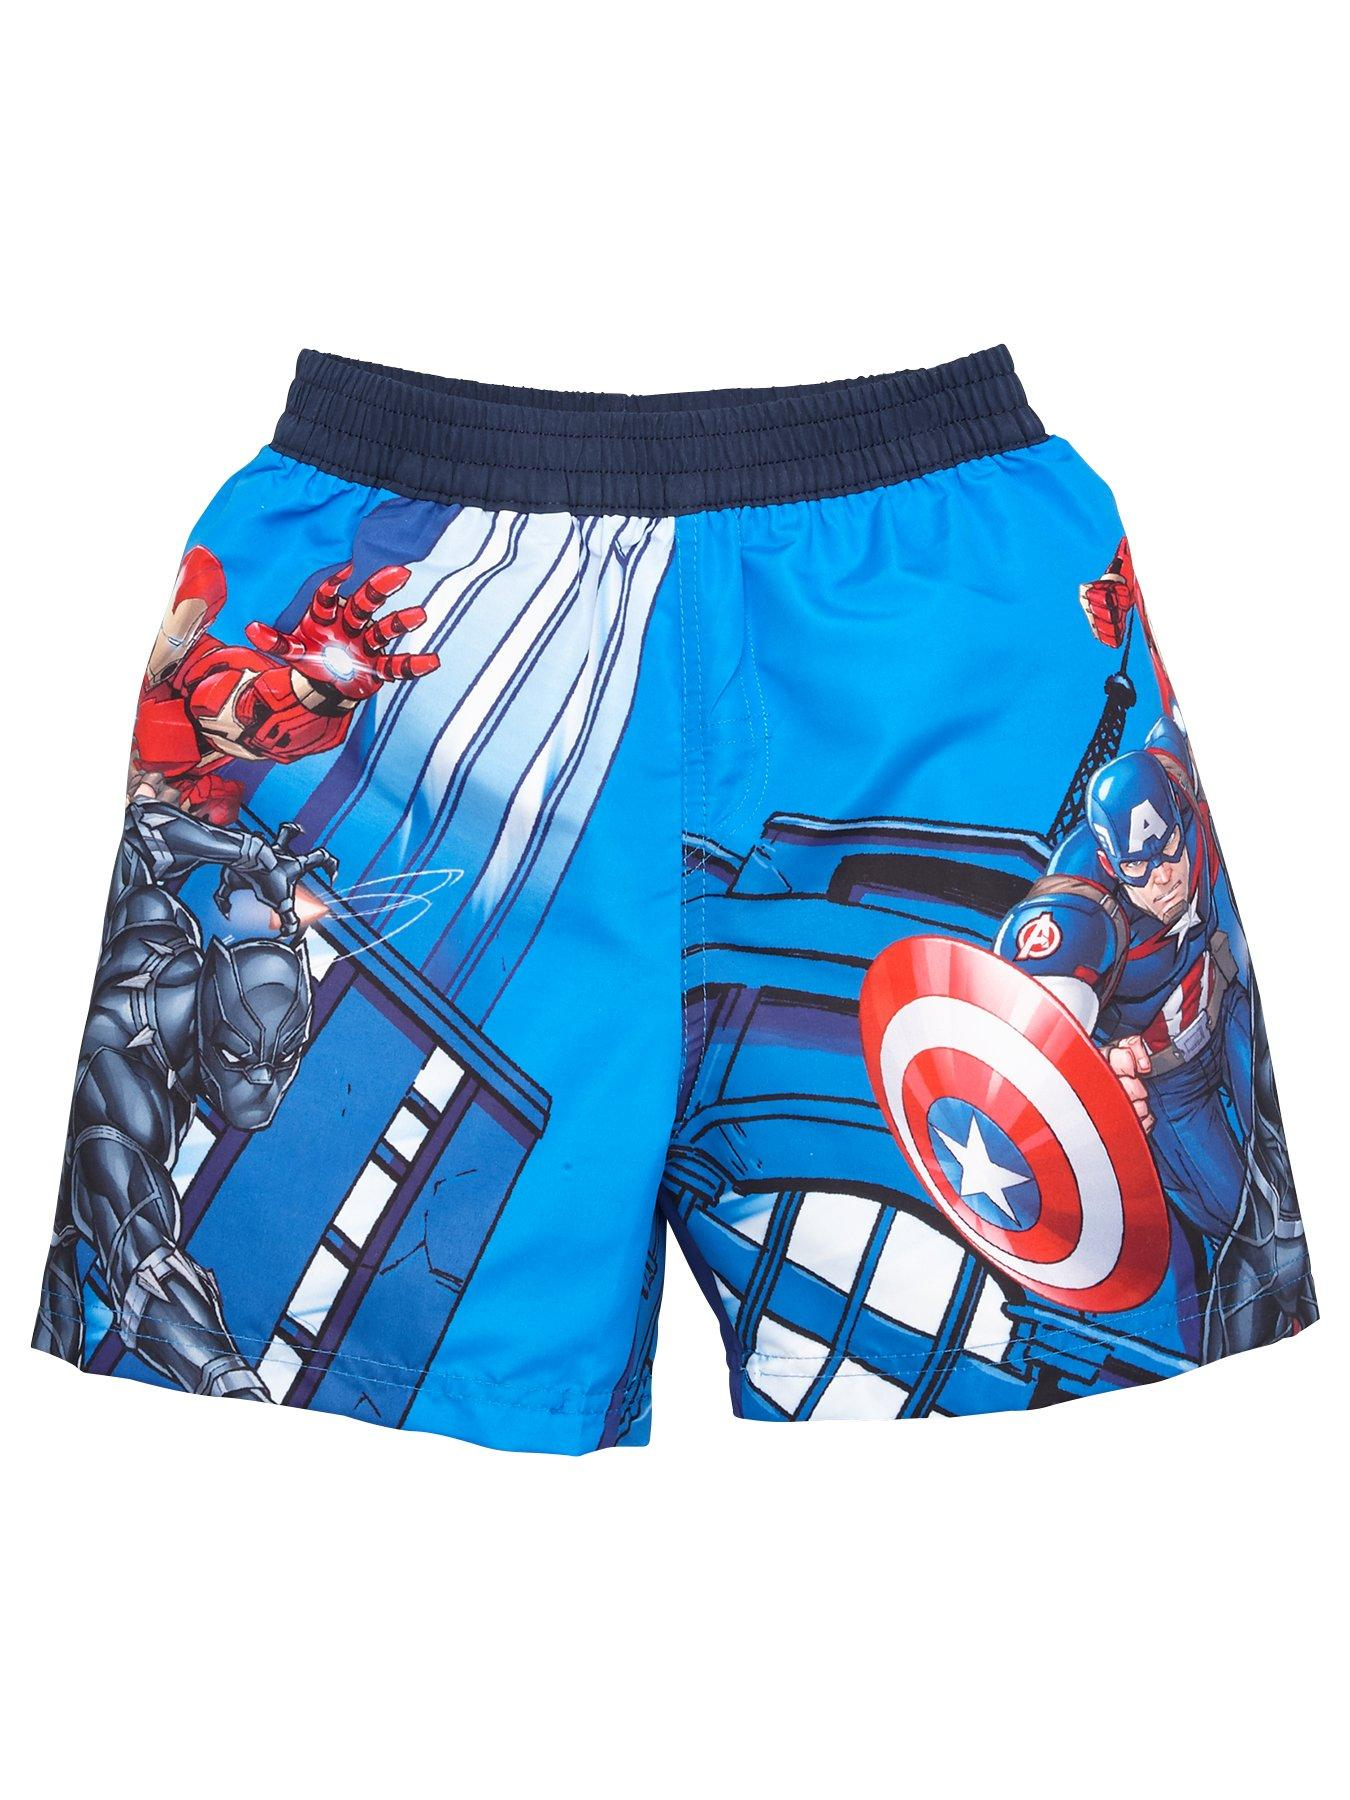 Marvel Avengers Boys Captain America Swimsuit Ages 18 Months to 7 Years